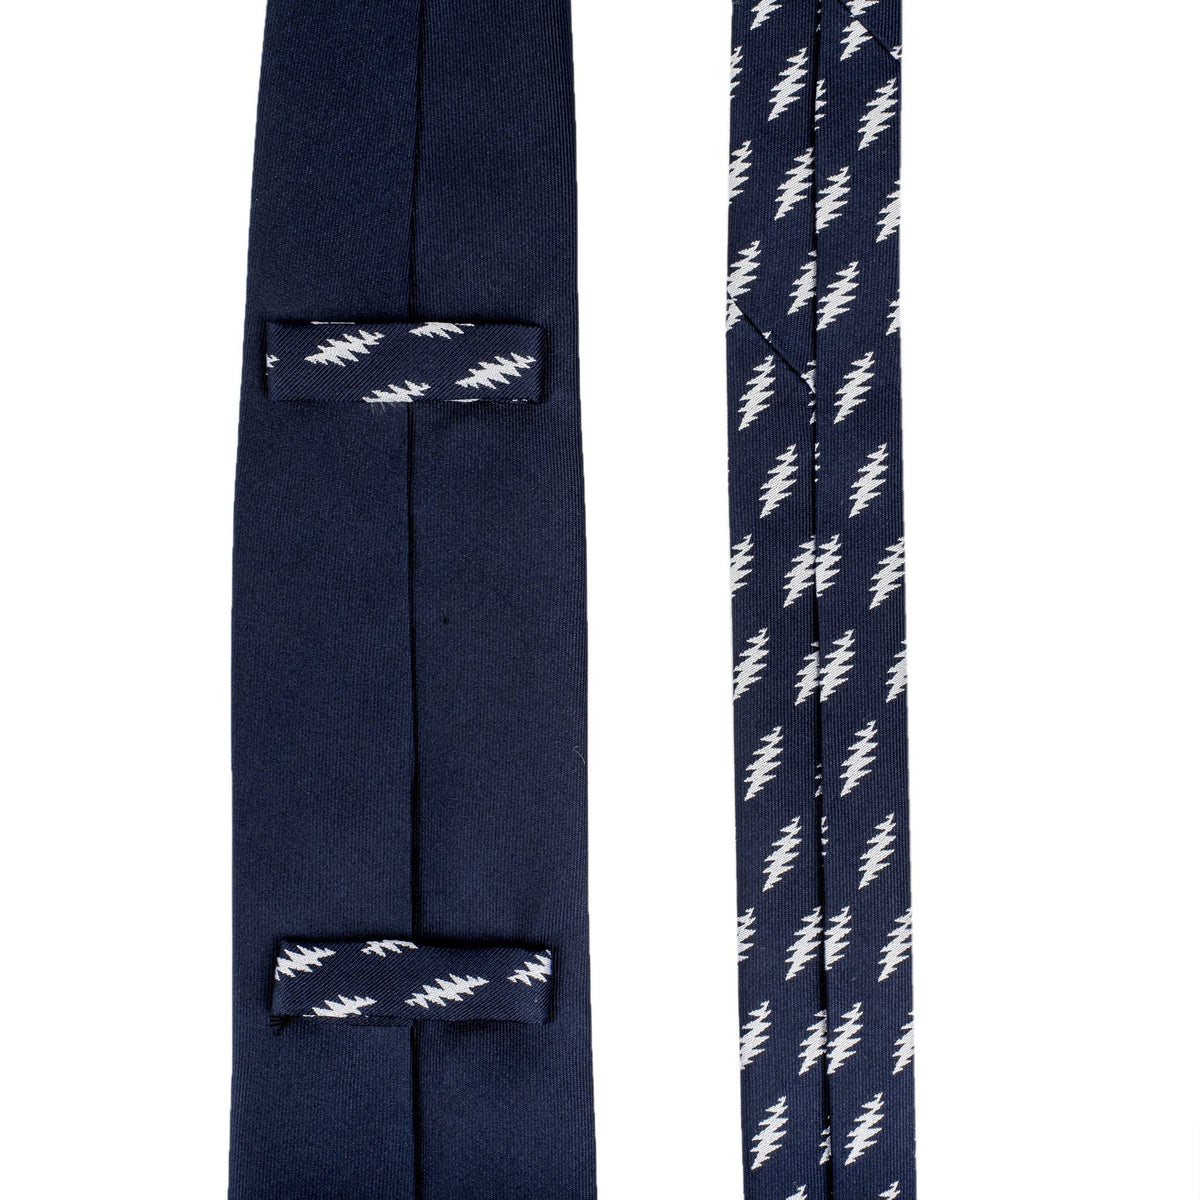 Grateful Dead Navy 13 Point Bolt Tie - Section 119